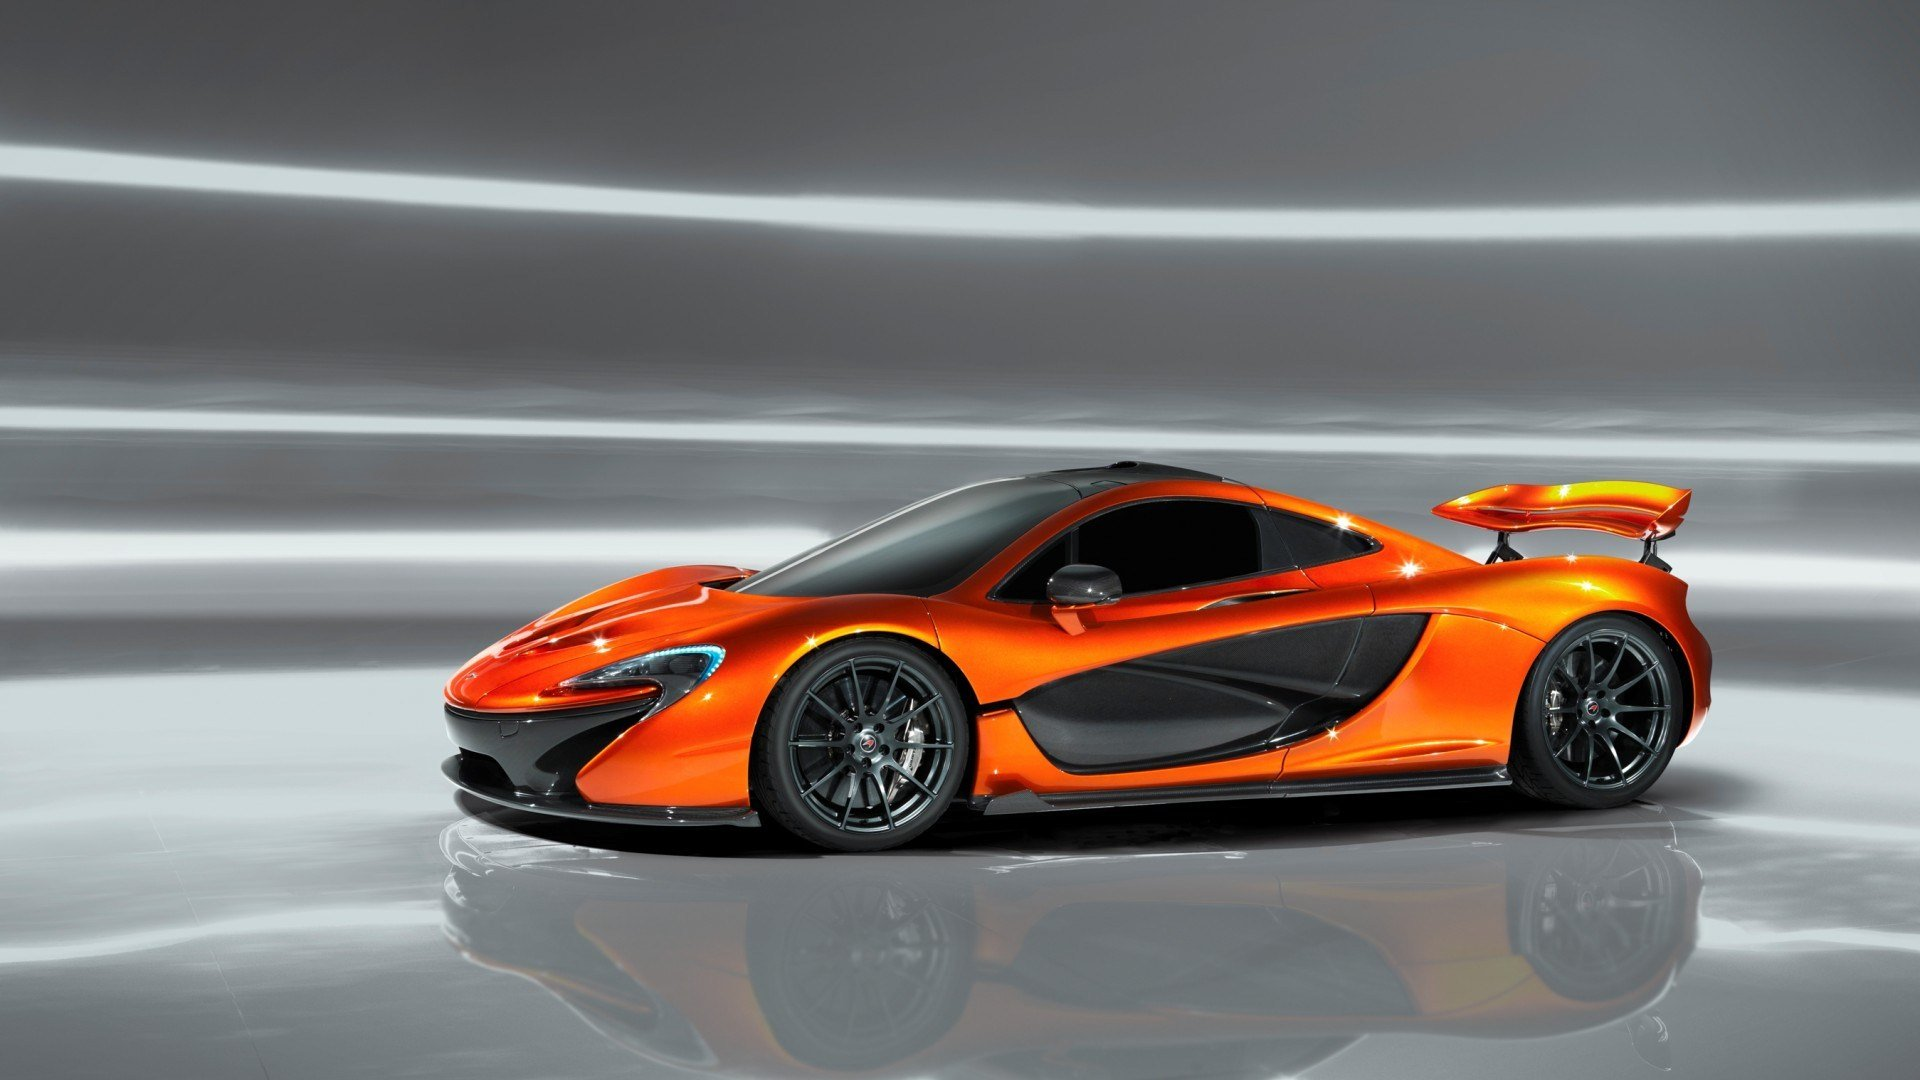 Latest Wallpaper Mclaren P1 Hd Automotive Cars 10296 Free Download